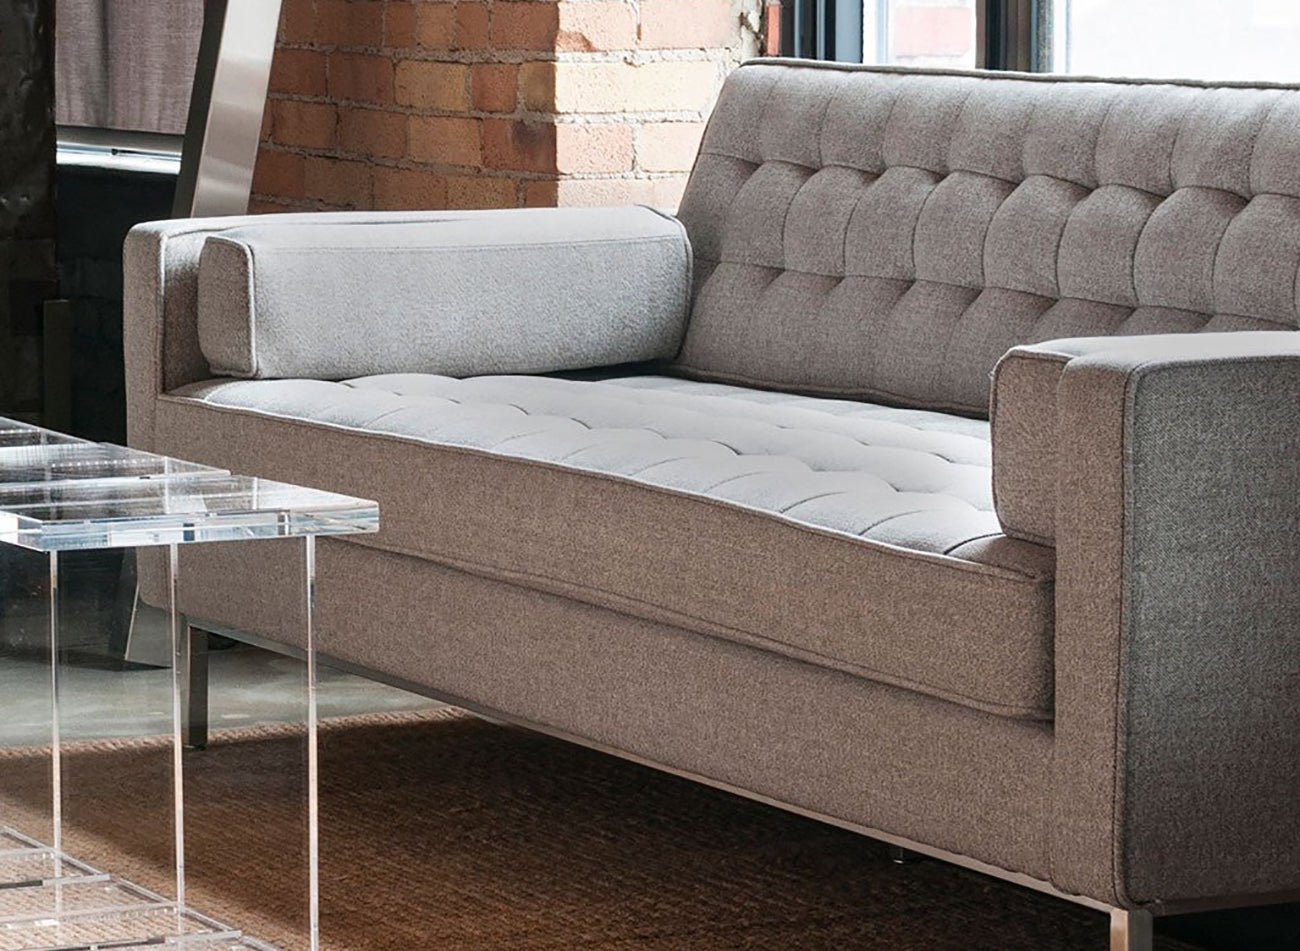 spencer  walnut leg  area  furniture for the modern home - the spencer sofa has a mid century appeal with walnut legs and a tailoredmasculine and confident feel